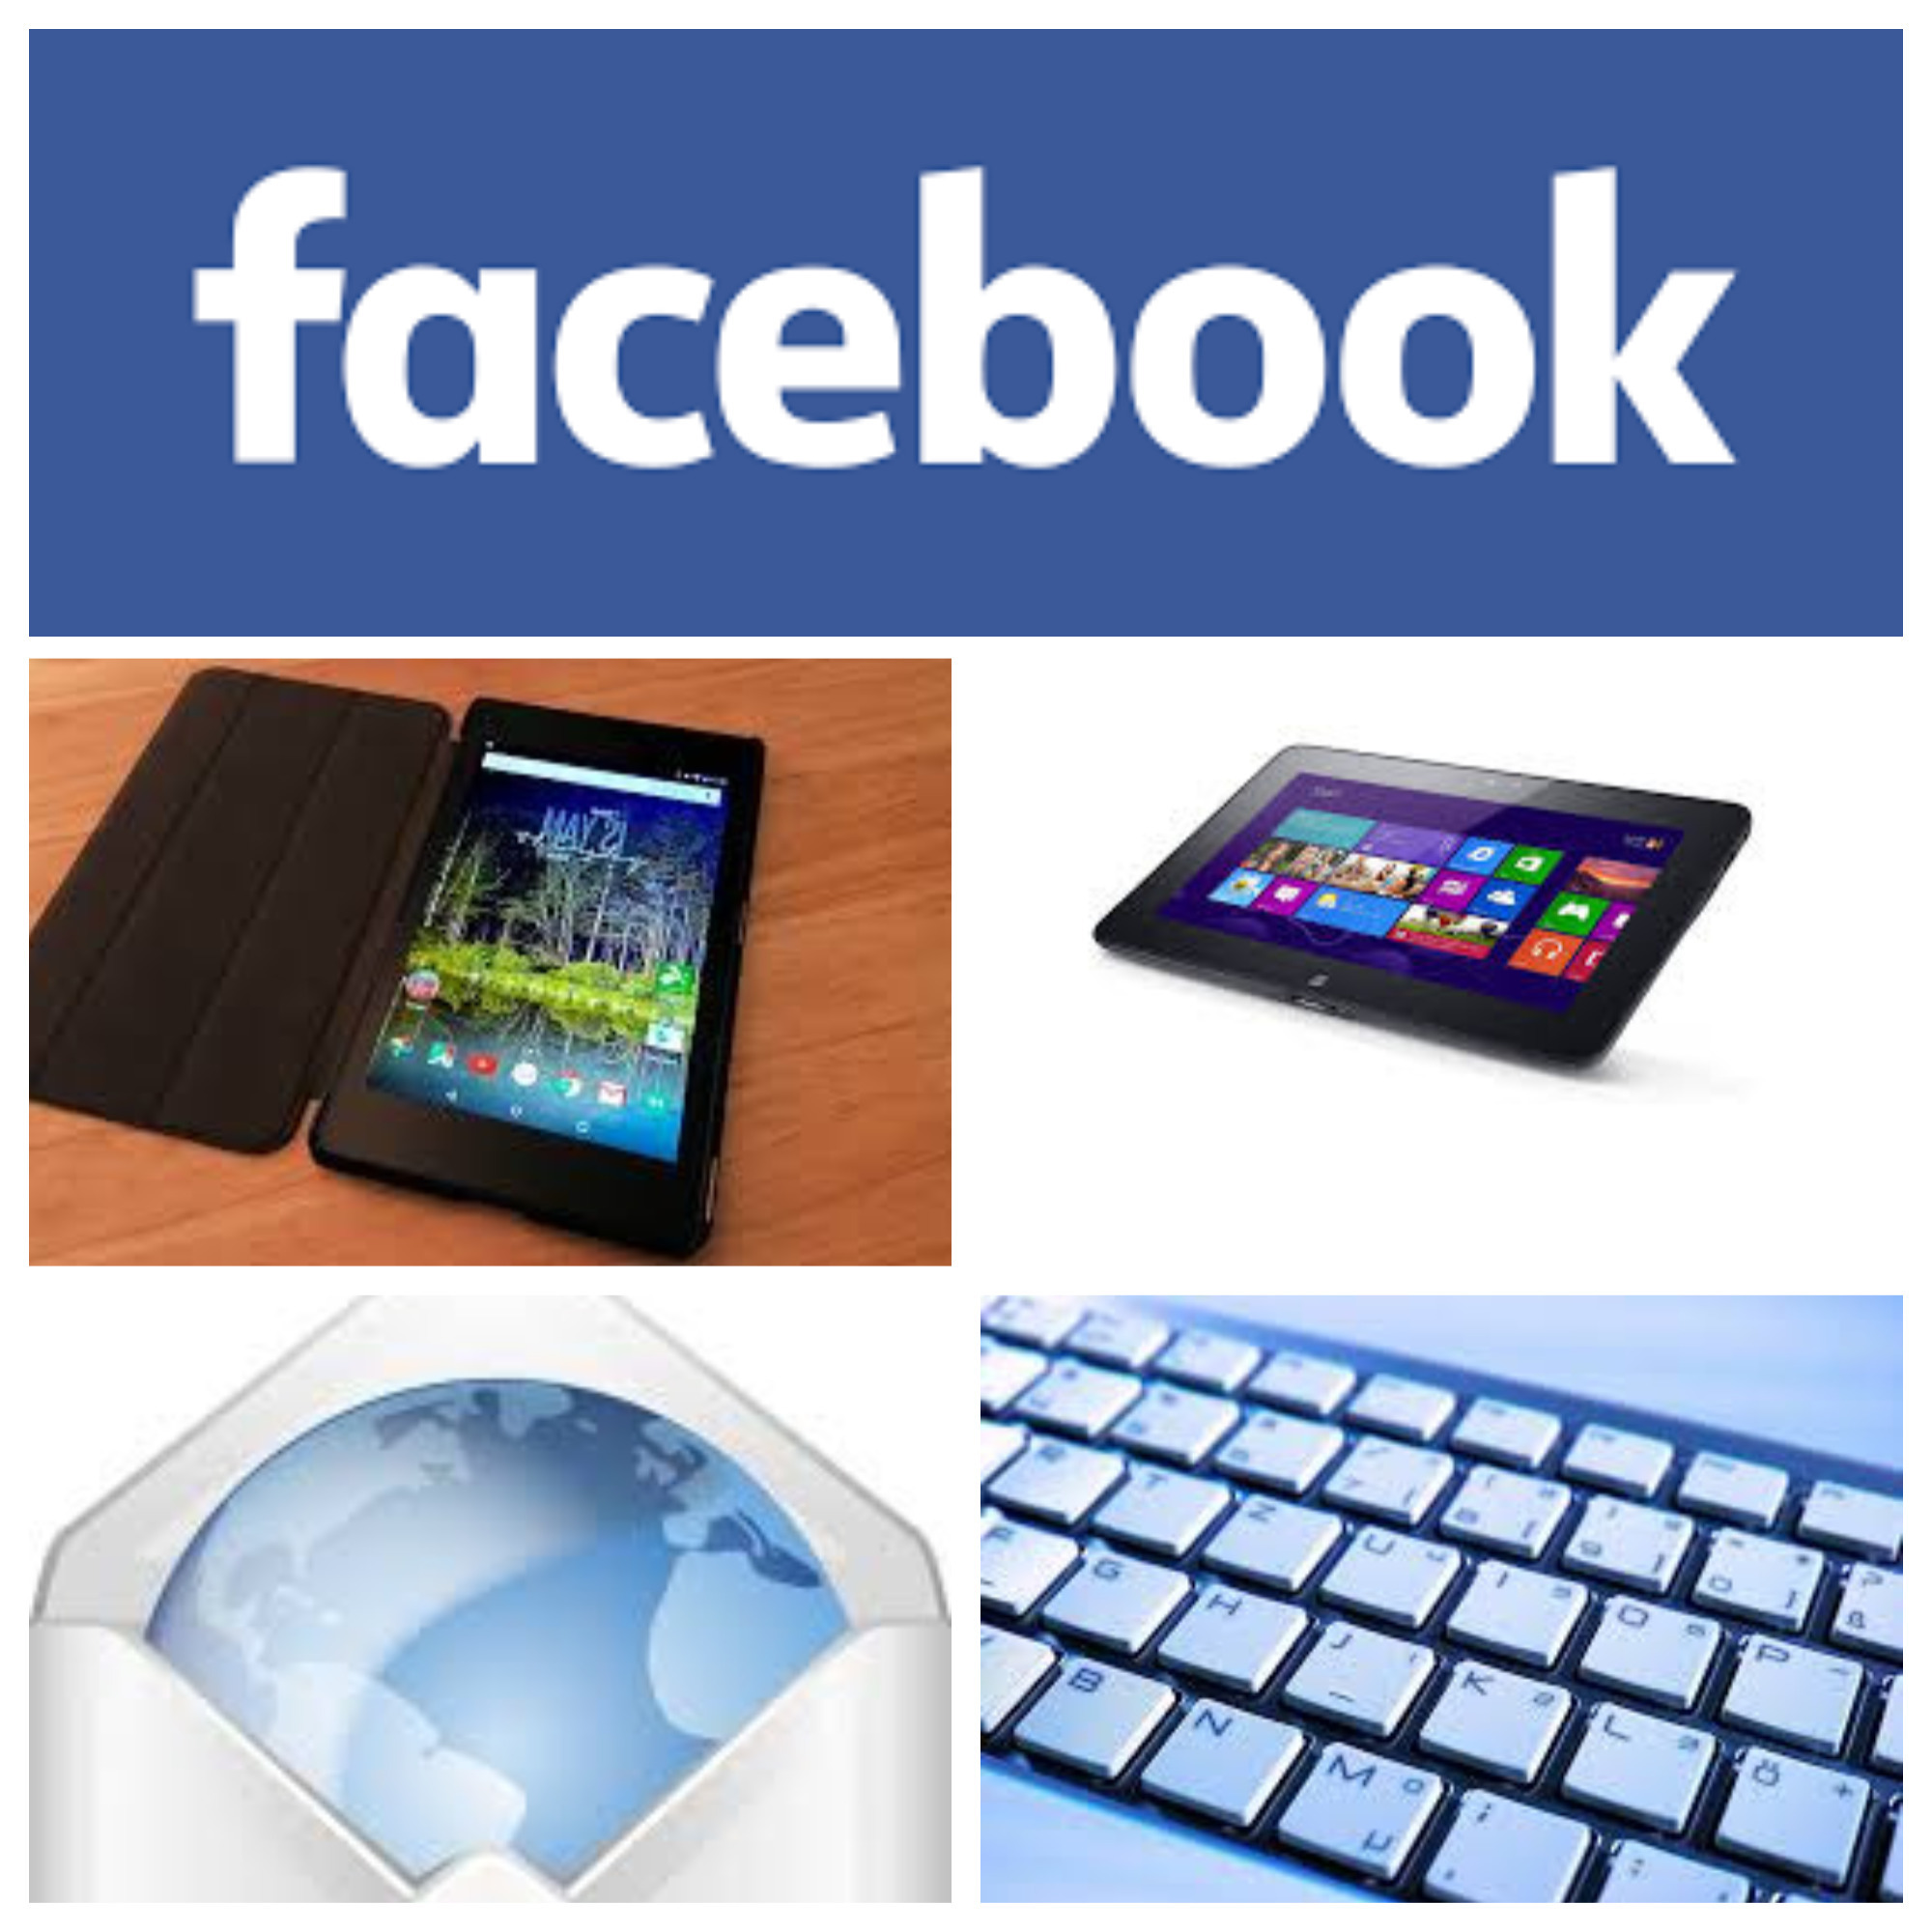 a collage of IT pictures showing a keyboard, a tablet, an email logo, a mobile phone and the facebook logo